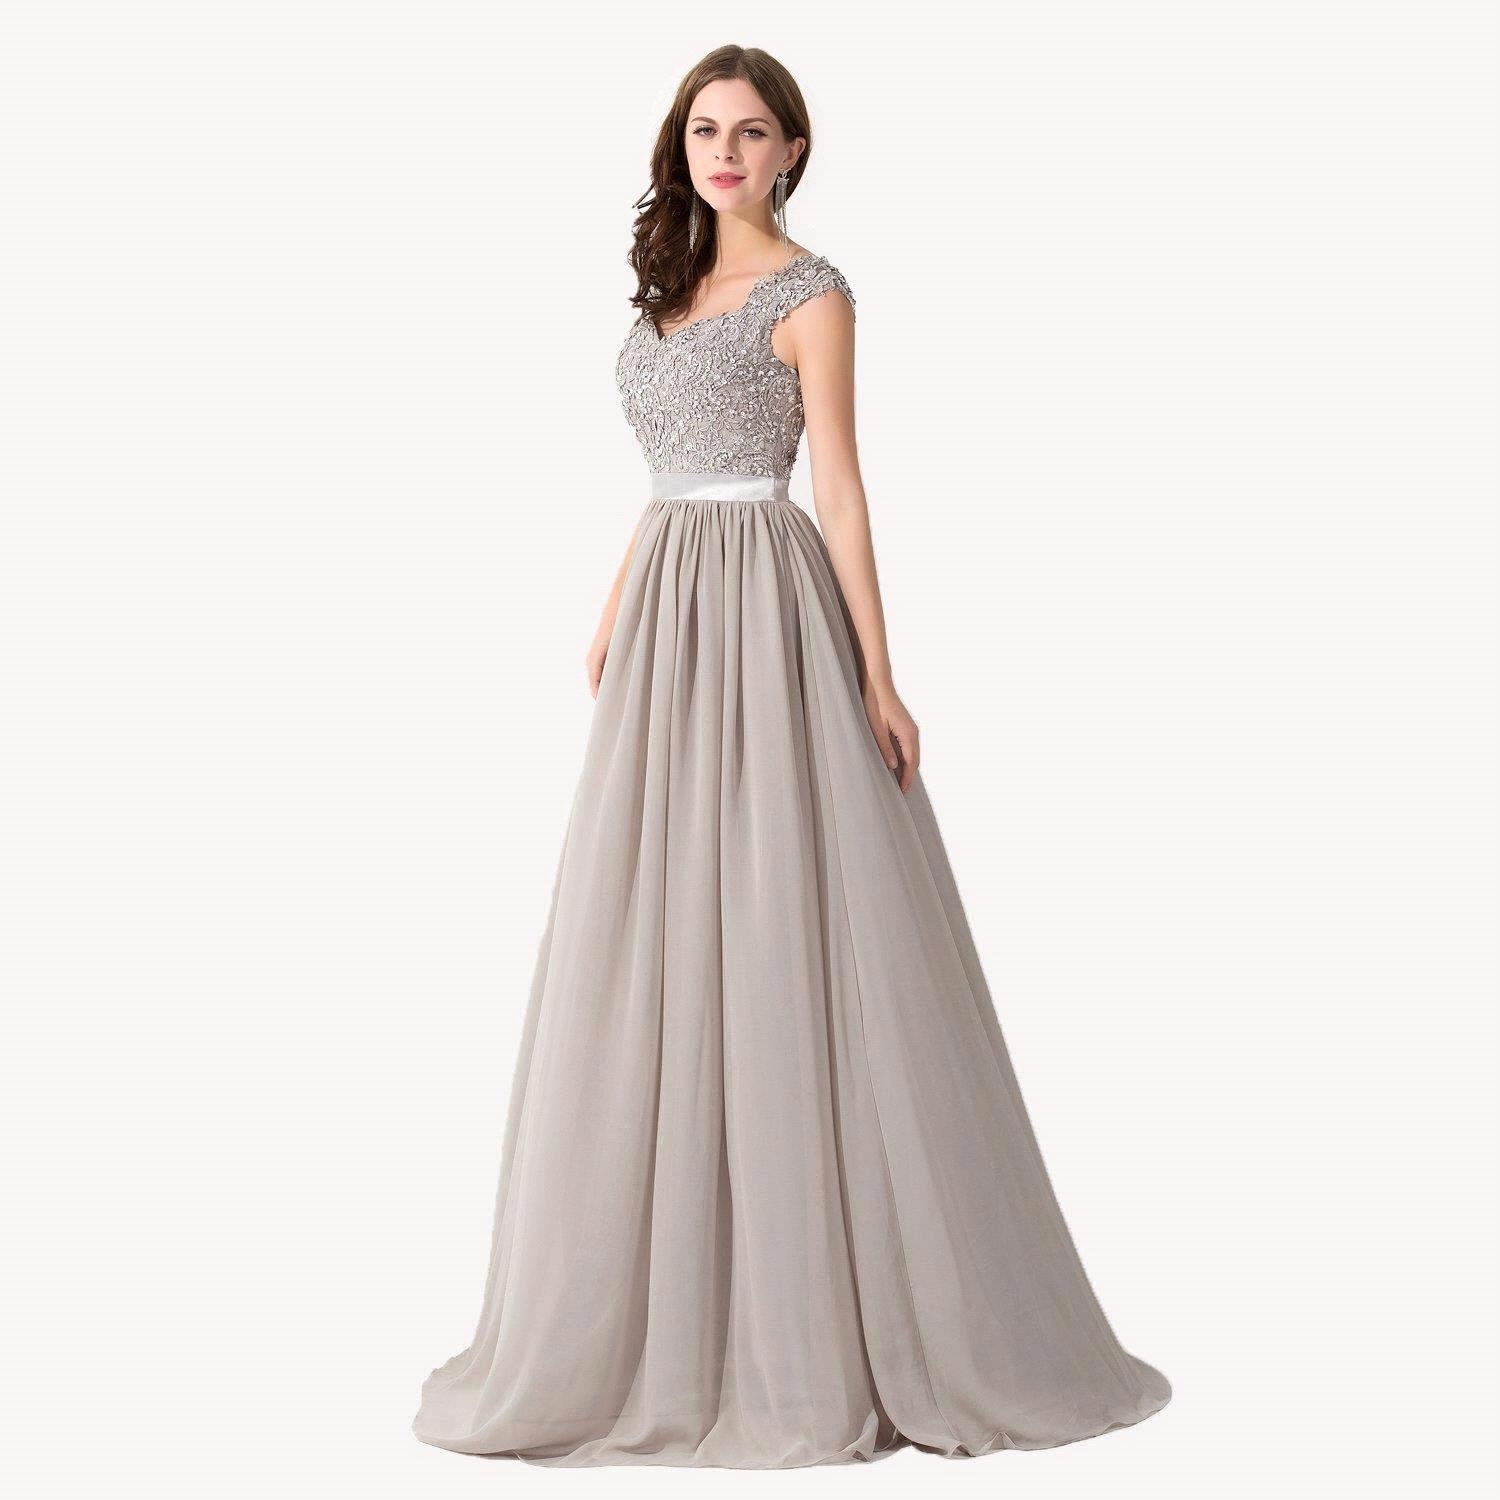 Popular silver bridesmaid dresses plus size buy cheap silver new lace long bridesmaid dresses 2016 silver a line wedding party gowns plus size maid of ombrellifo Image collections